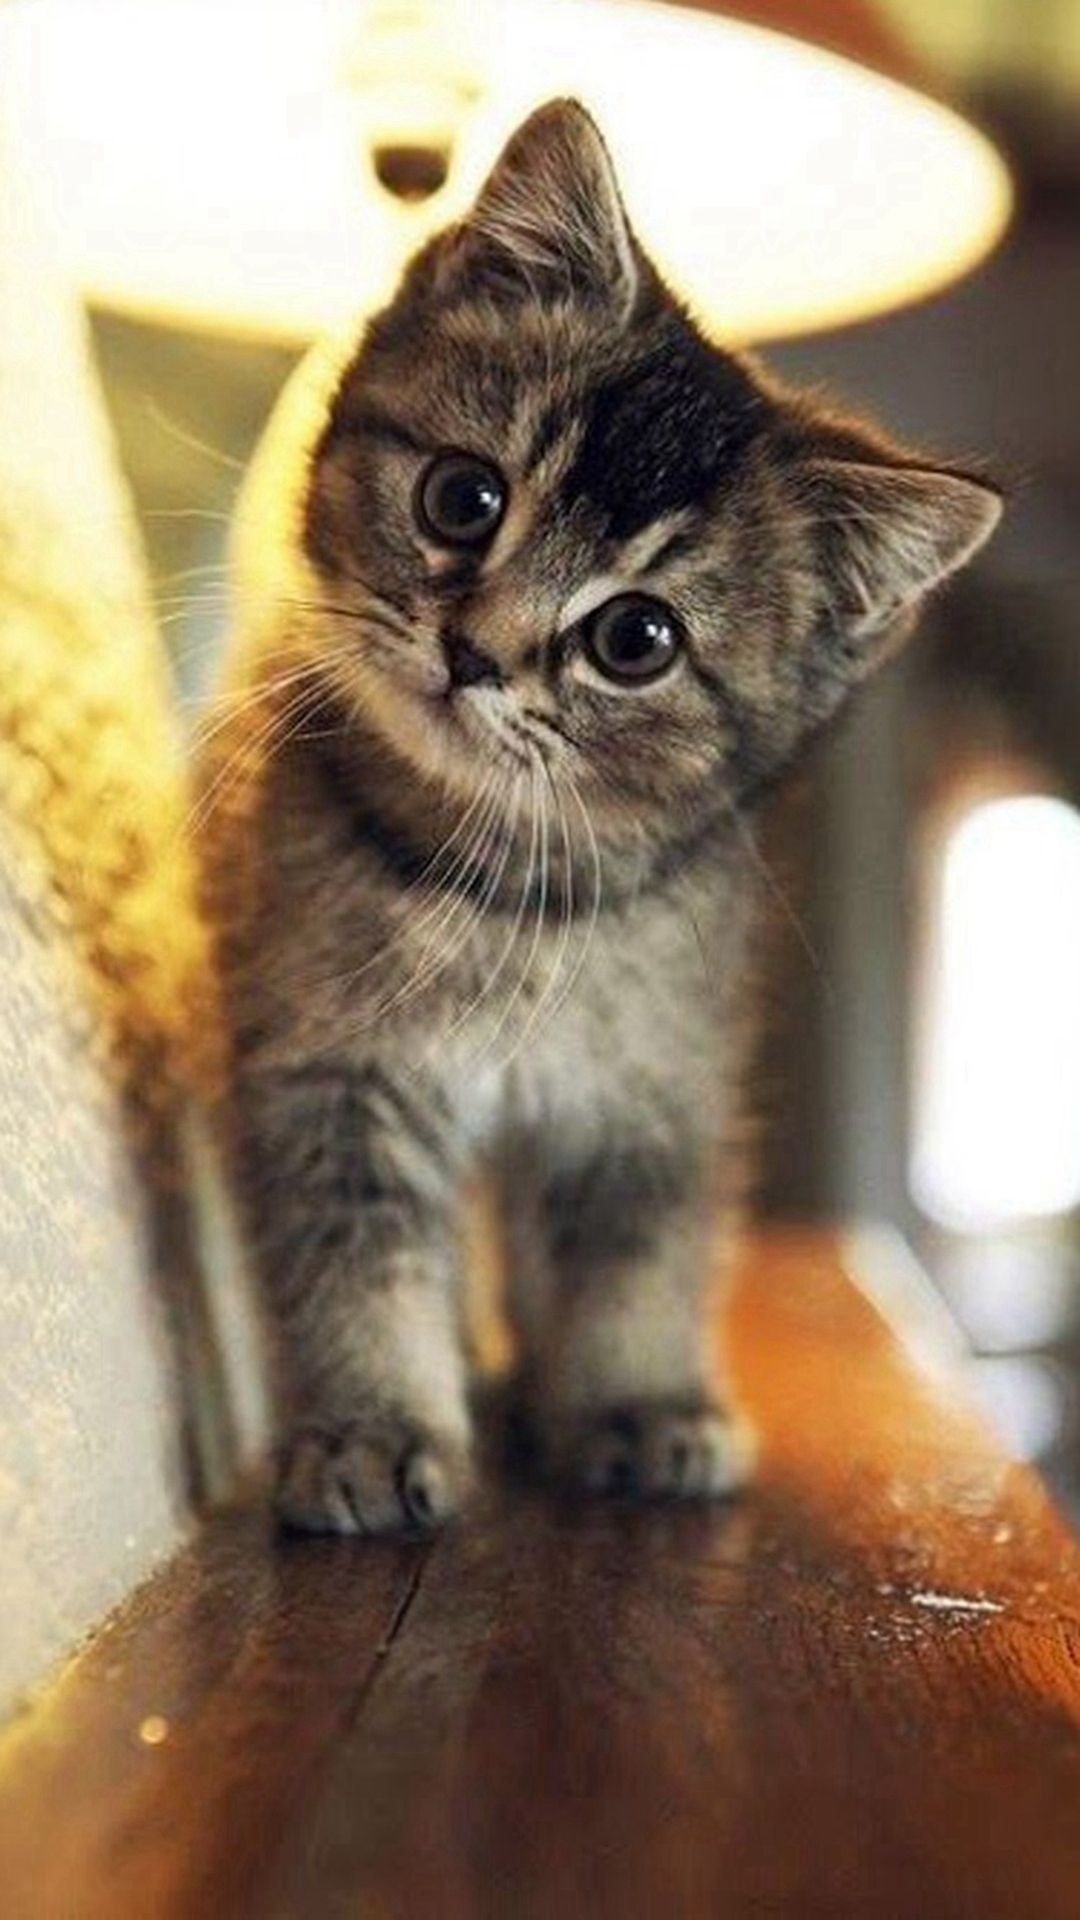 Cute Stare At Cat Animal Iphone 8 Wallpapers Cute Cat Wallpaper